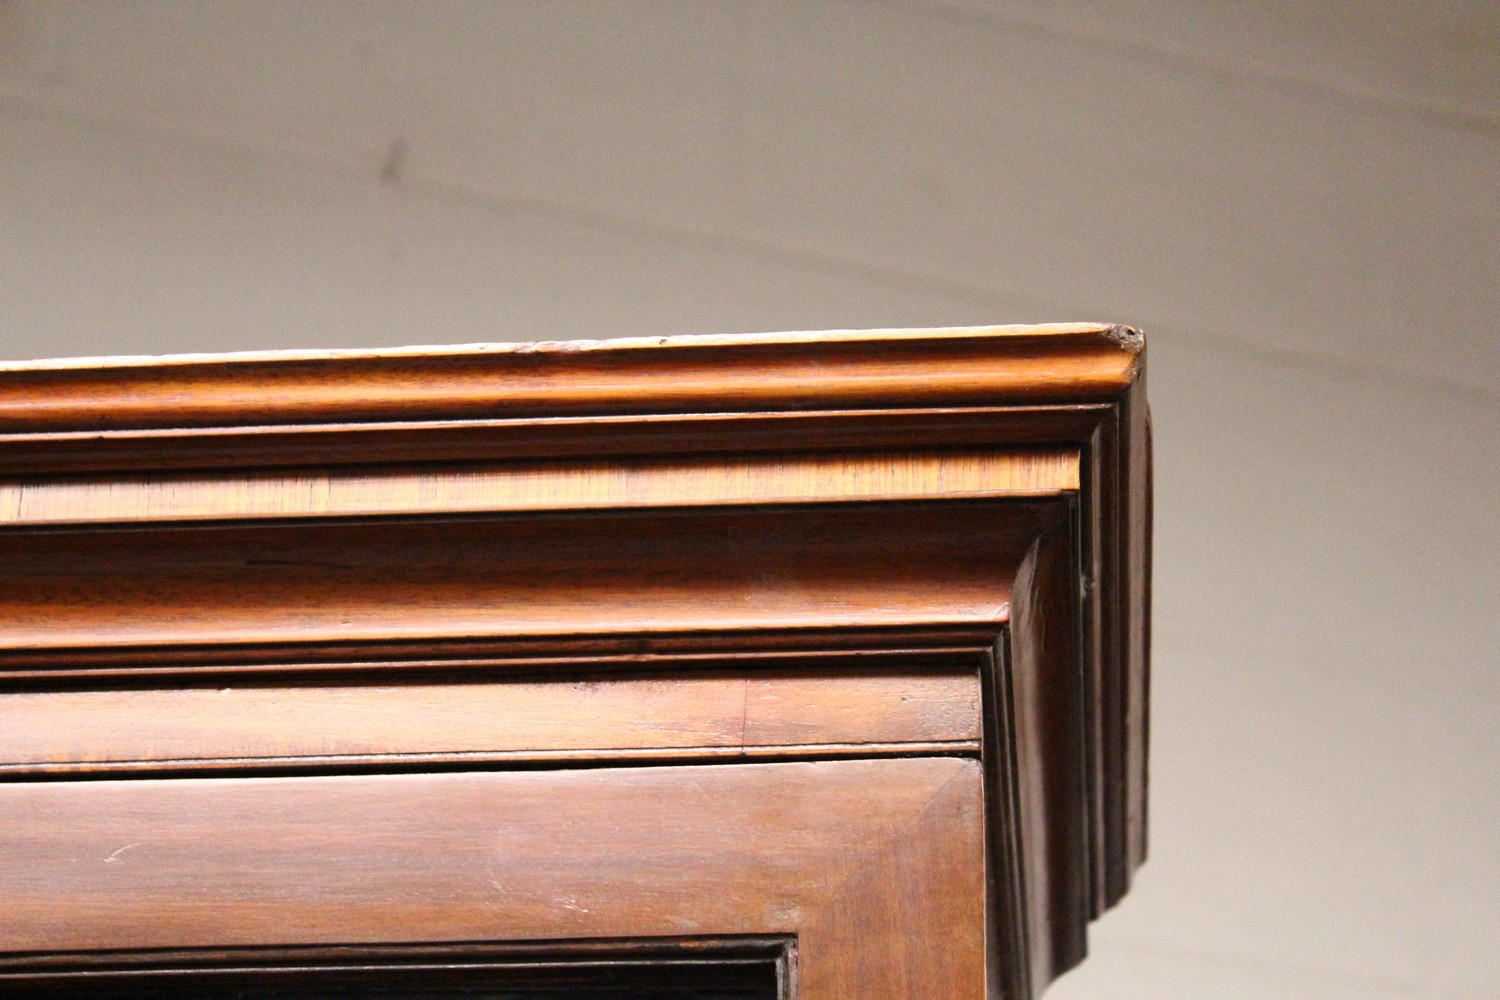 A GEORGE III DESIGN MAHOGANY CUPBOARD BOOKCASE, 19TH CENTURY, with a moulded cornice, pair of - Image 2 of 10